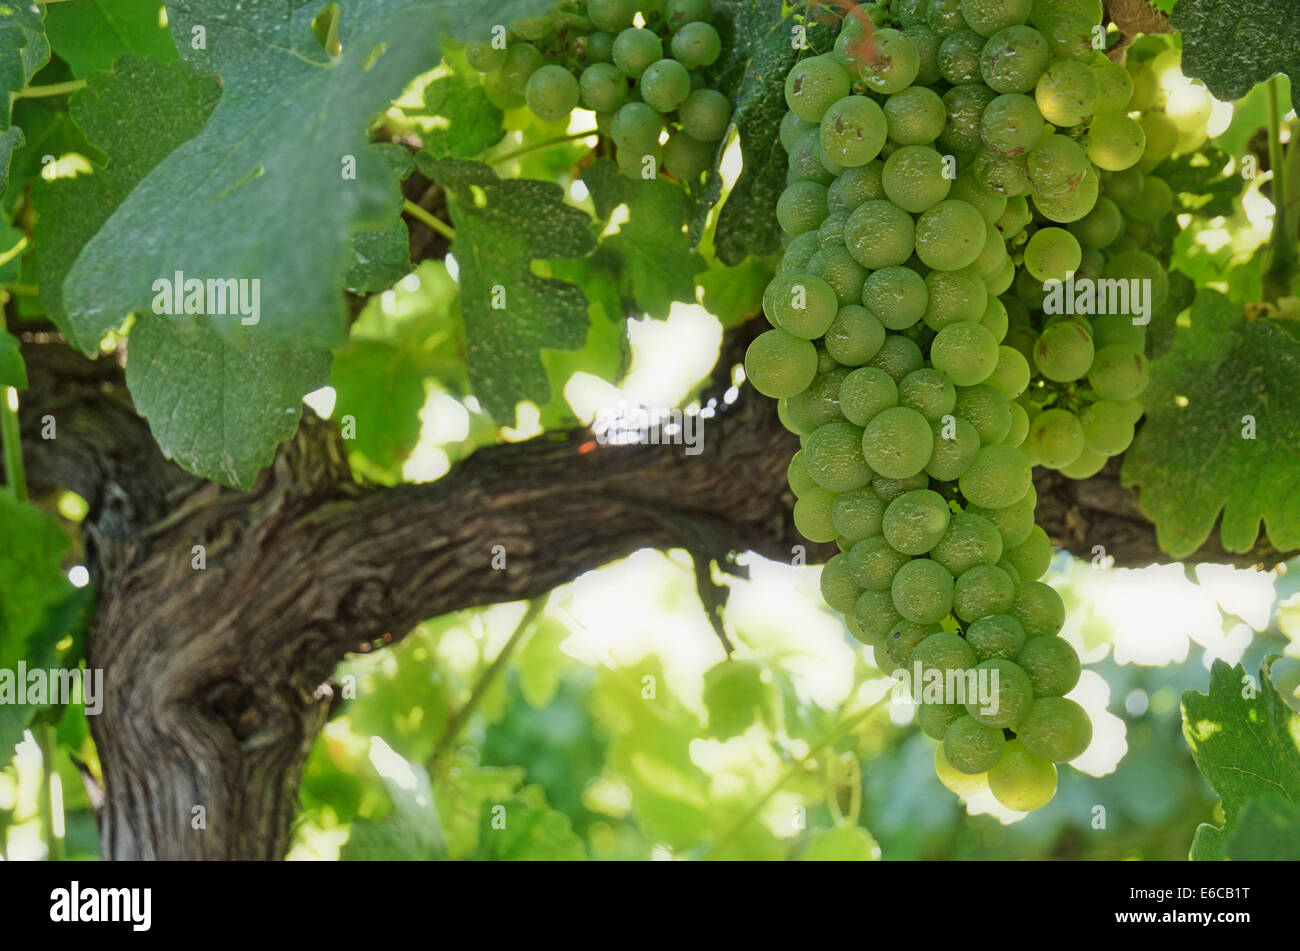 Green grapes on the vine in a vineyard in summer, Provence, France, Europe - Stock Image